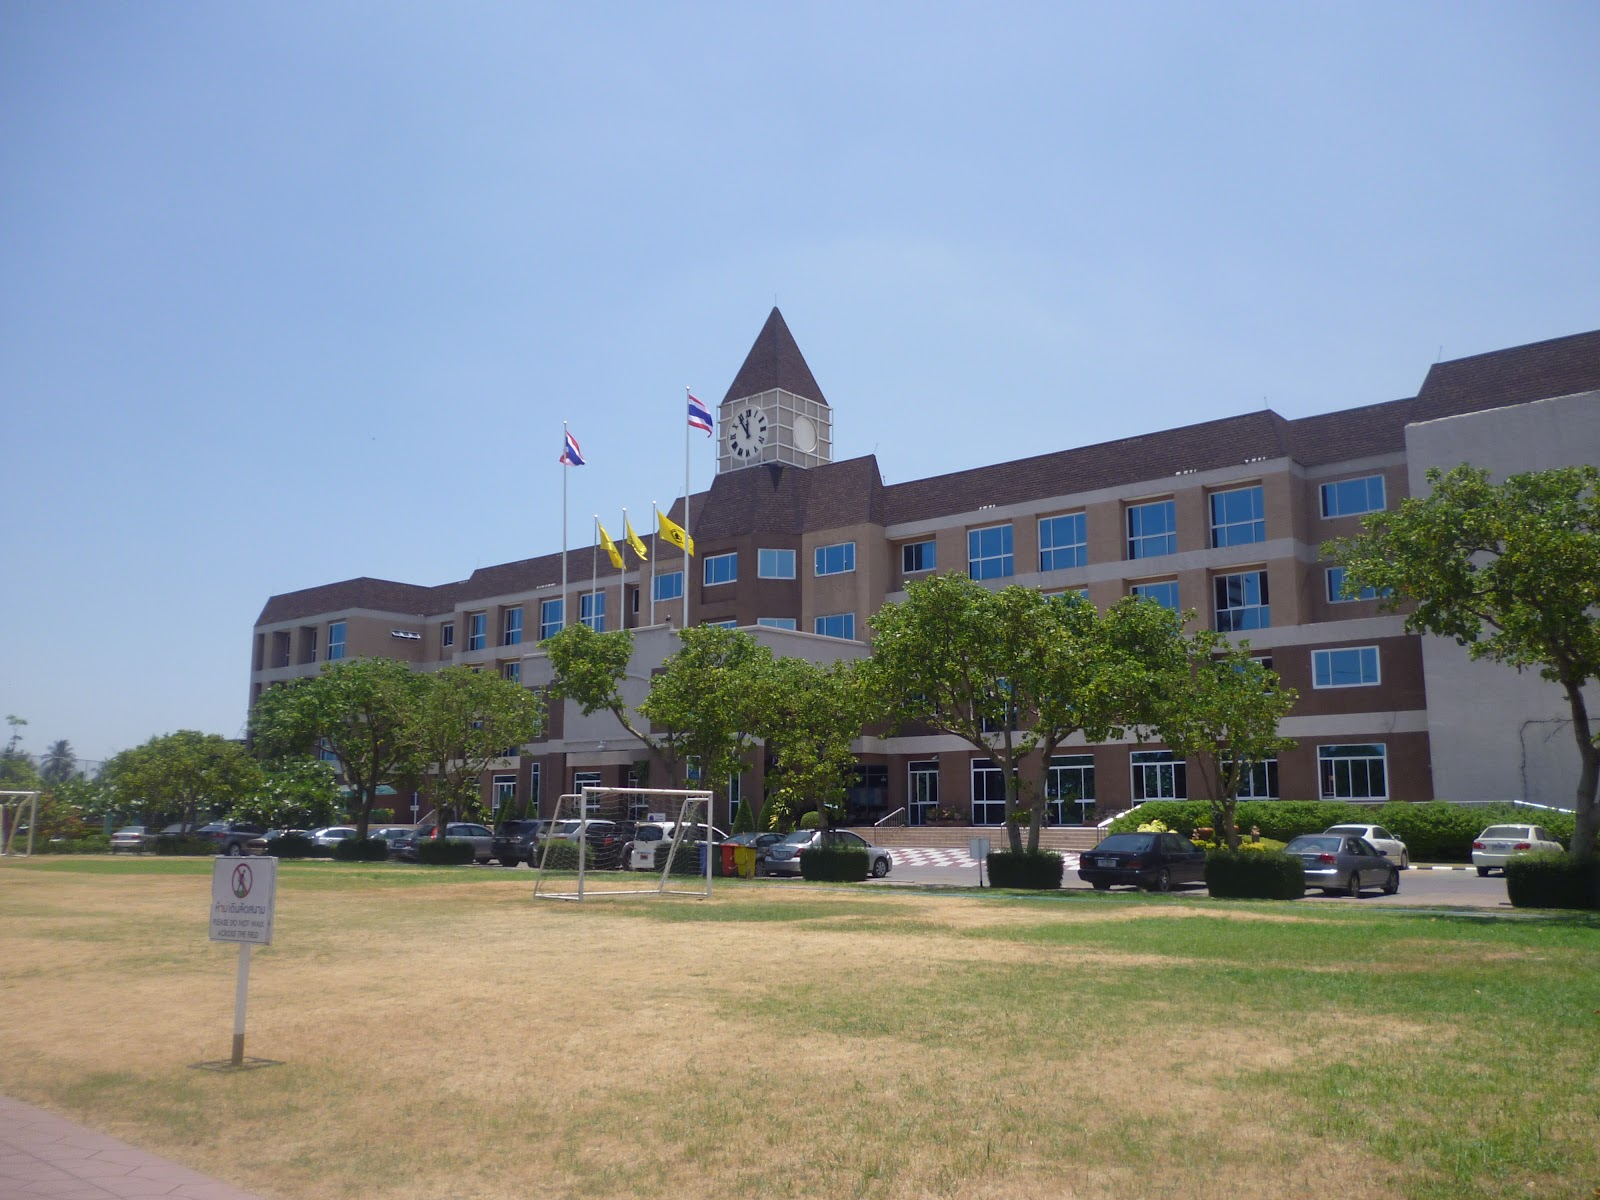 This Is A Picture Of Our School It Four Stories Tall And Several Buildings Most Rooms In The Are Air Conditioned Mostly Every Area Outside